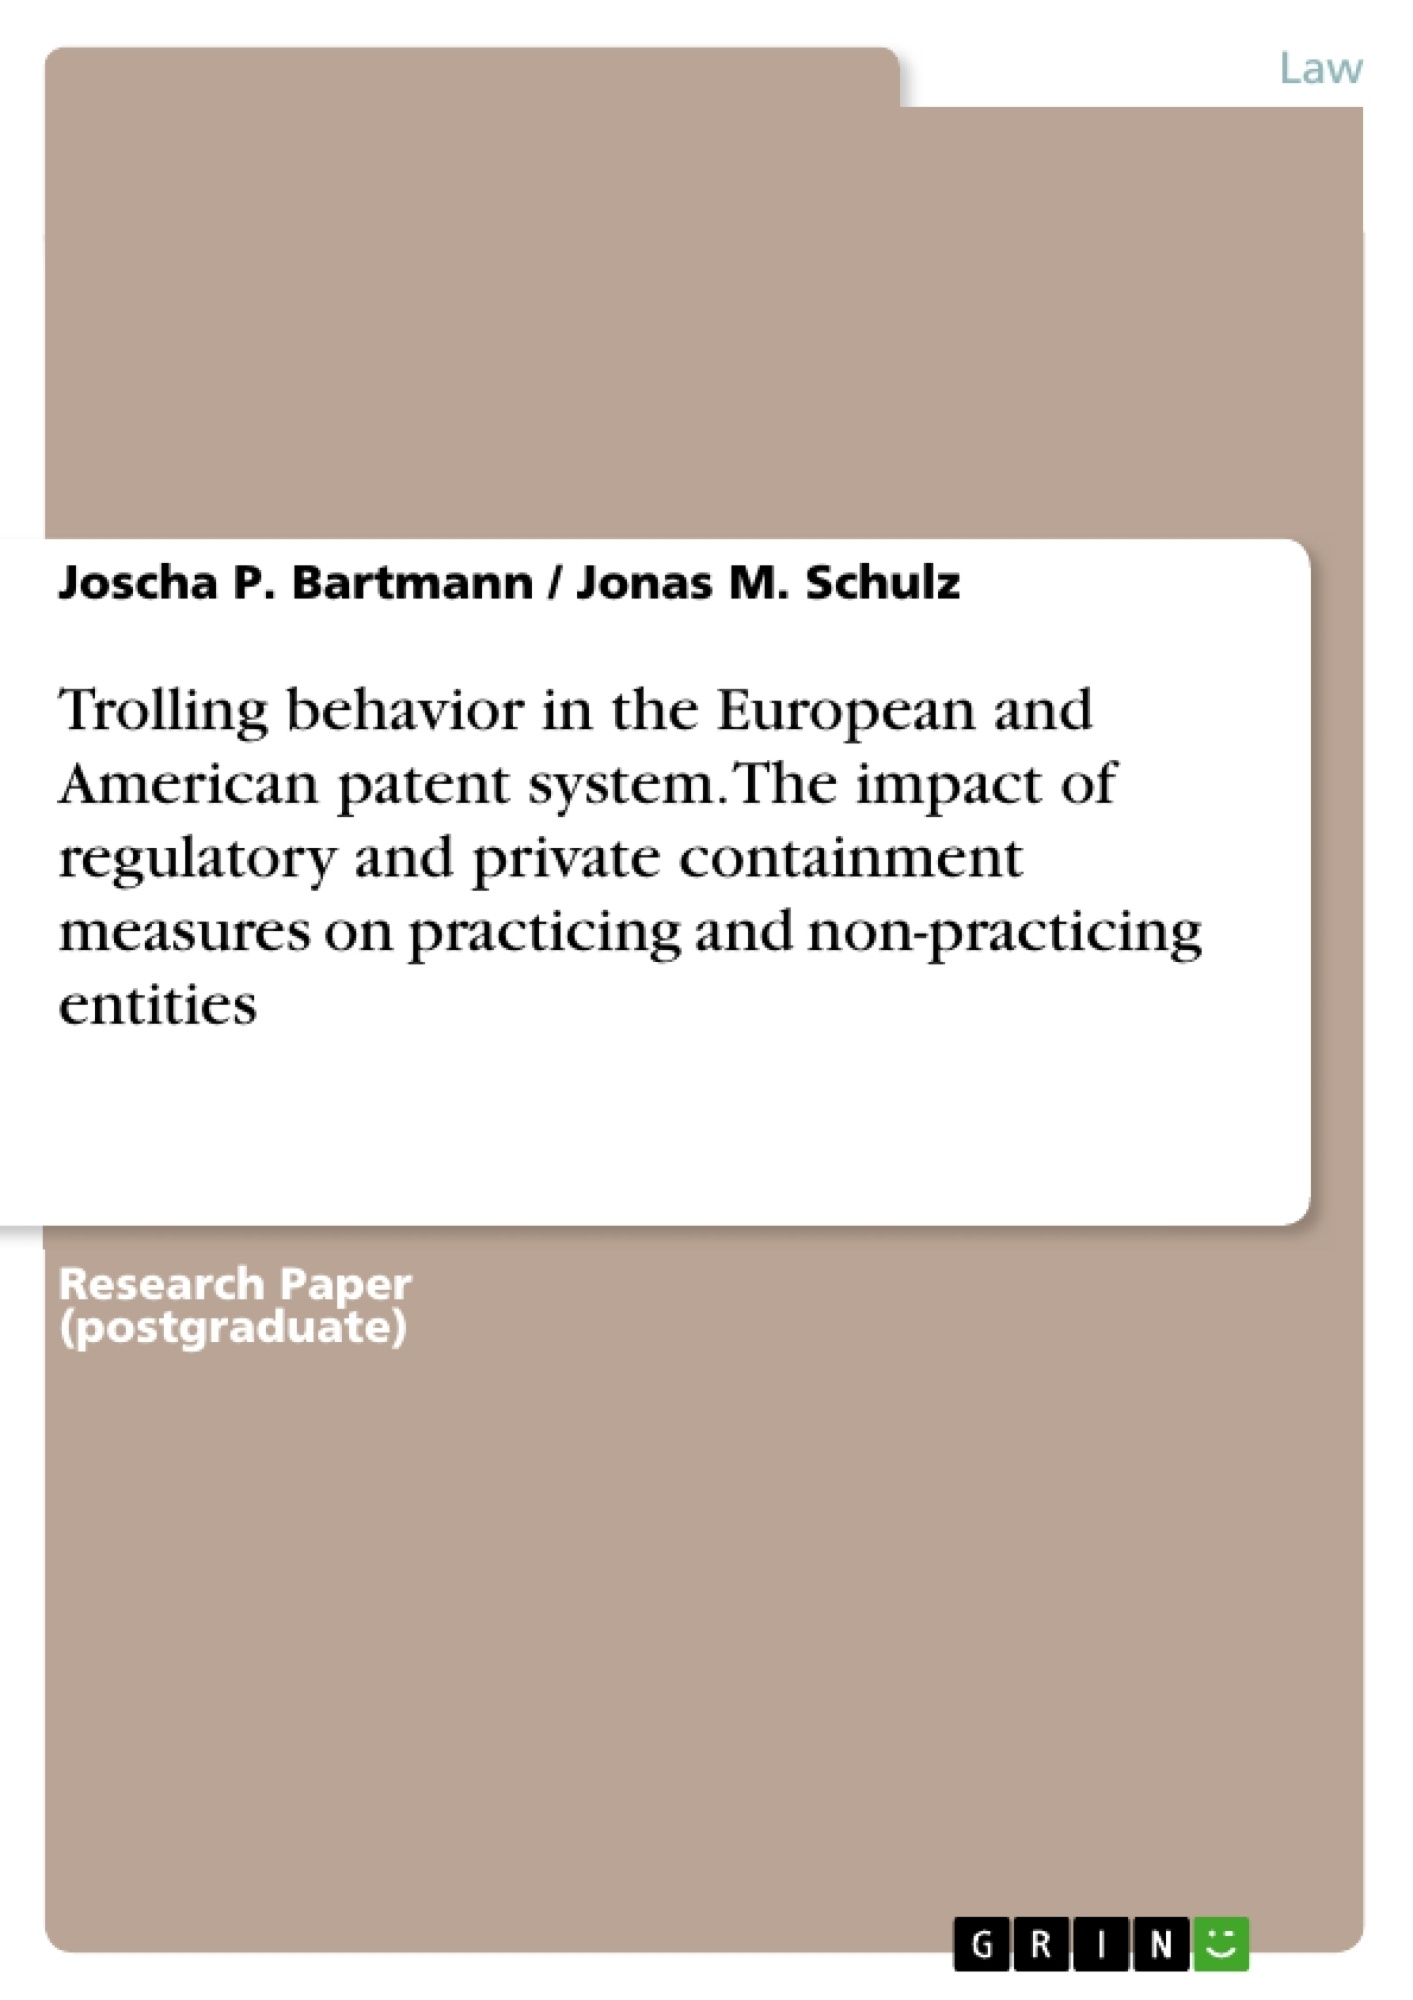 Title: Trolling behavior in the European and American patent system. The impact of regulatory and private containment measures on practicing and non-practicing entities